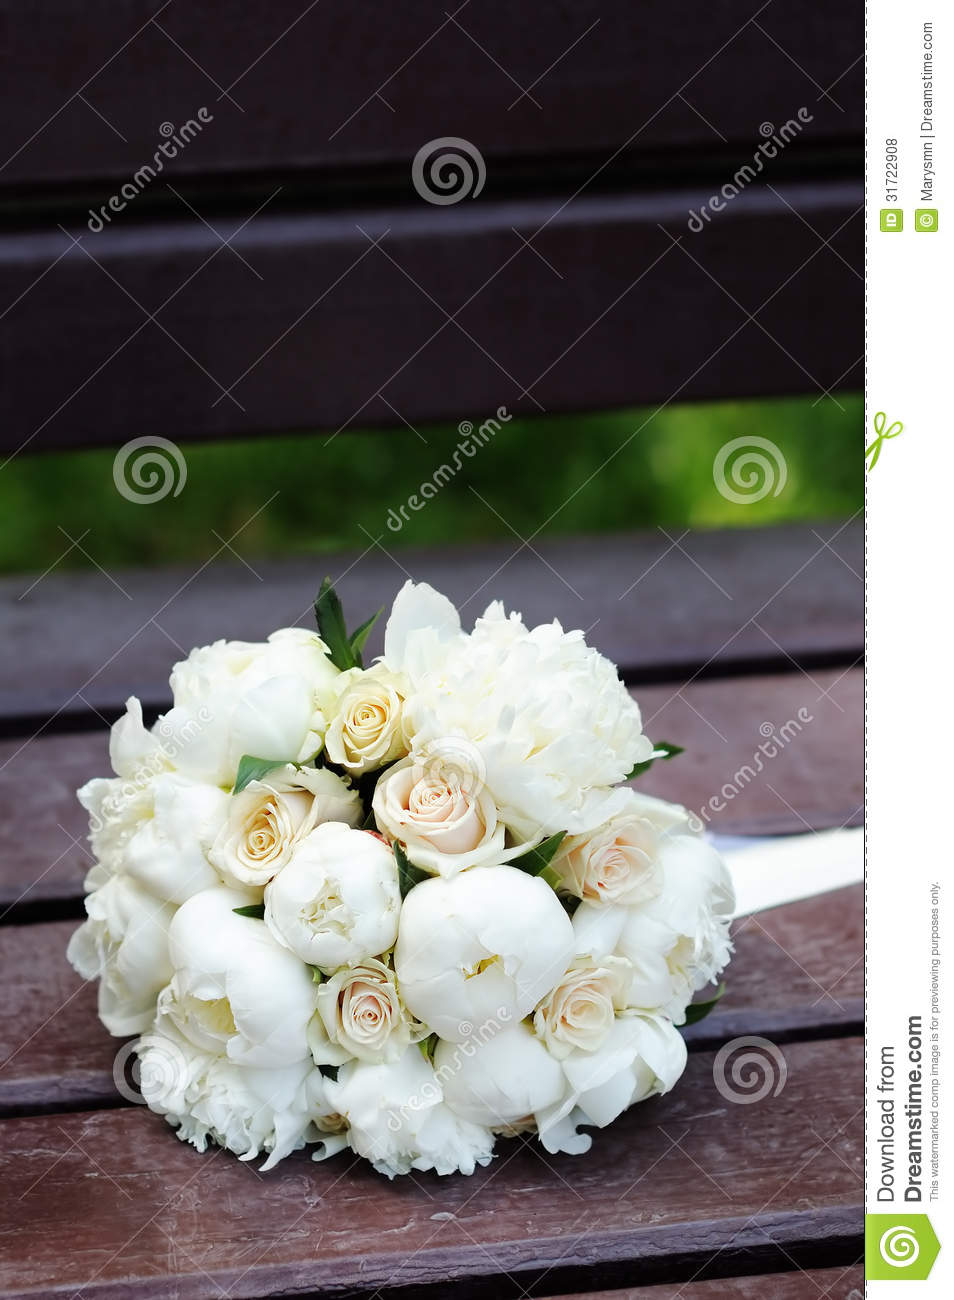 beautiful wedding flowers bouquet royalty free stock photos image 31722908. Black Bedroom Furniture Sets. Home Design Ideas